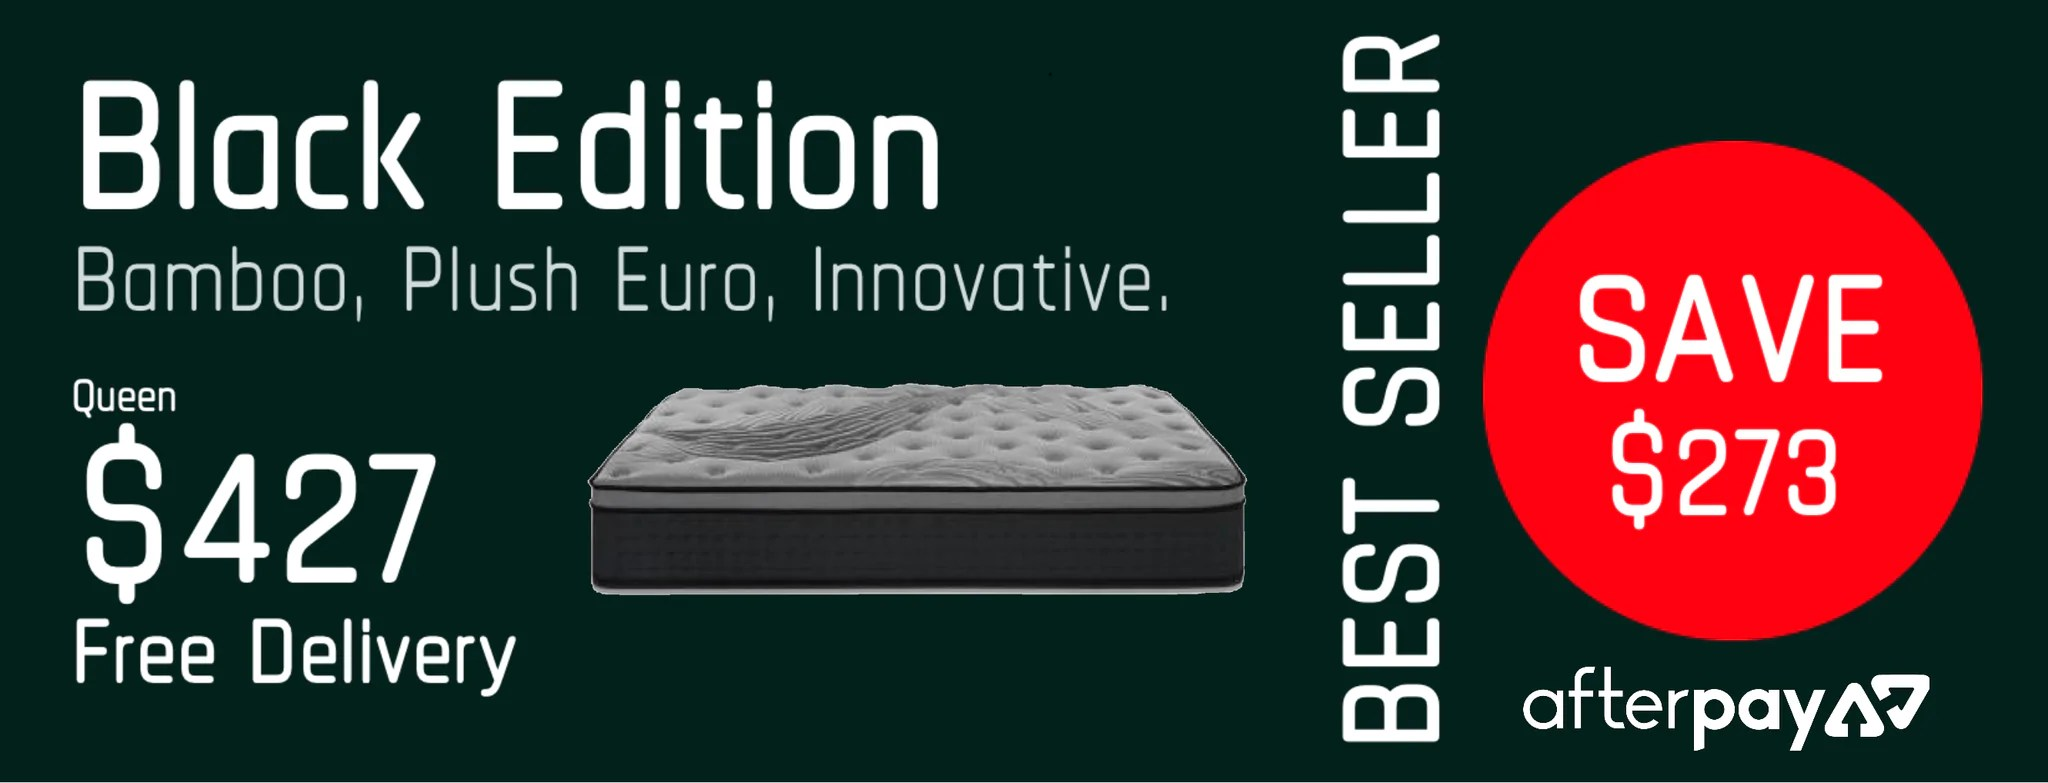 Double Bed Afterpay Premium Plush Foam Mattress Black Edition Afterpay